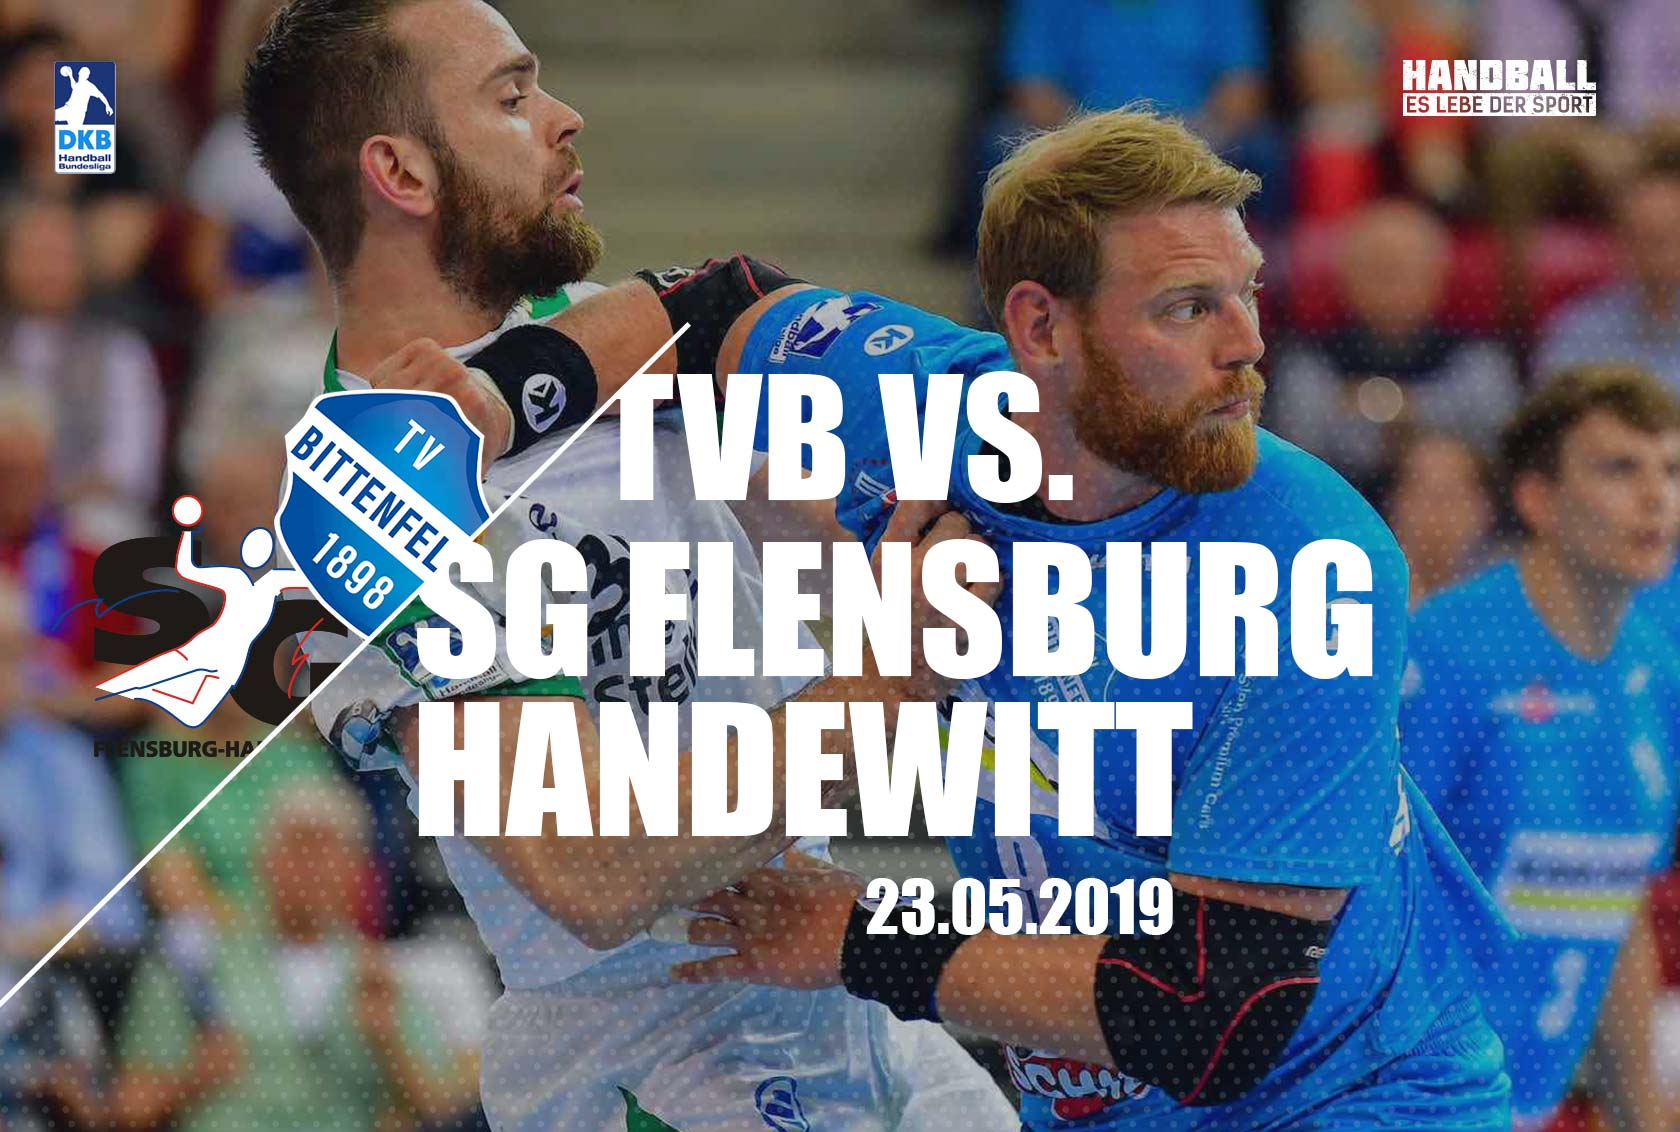 tvb-upcoming-flensburg